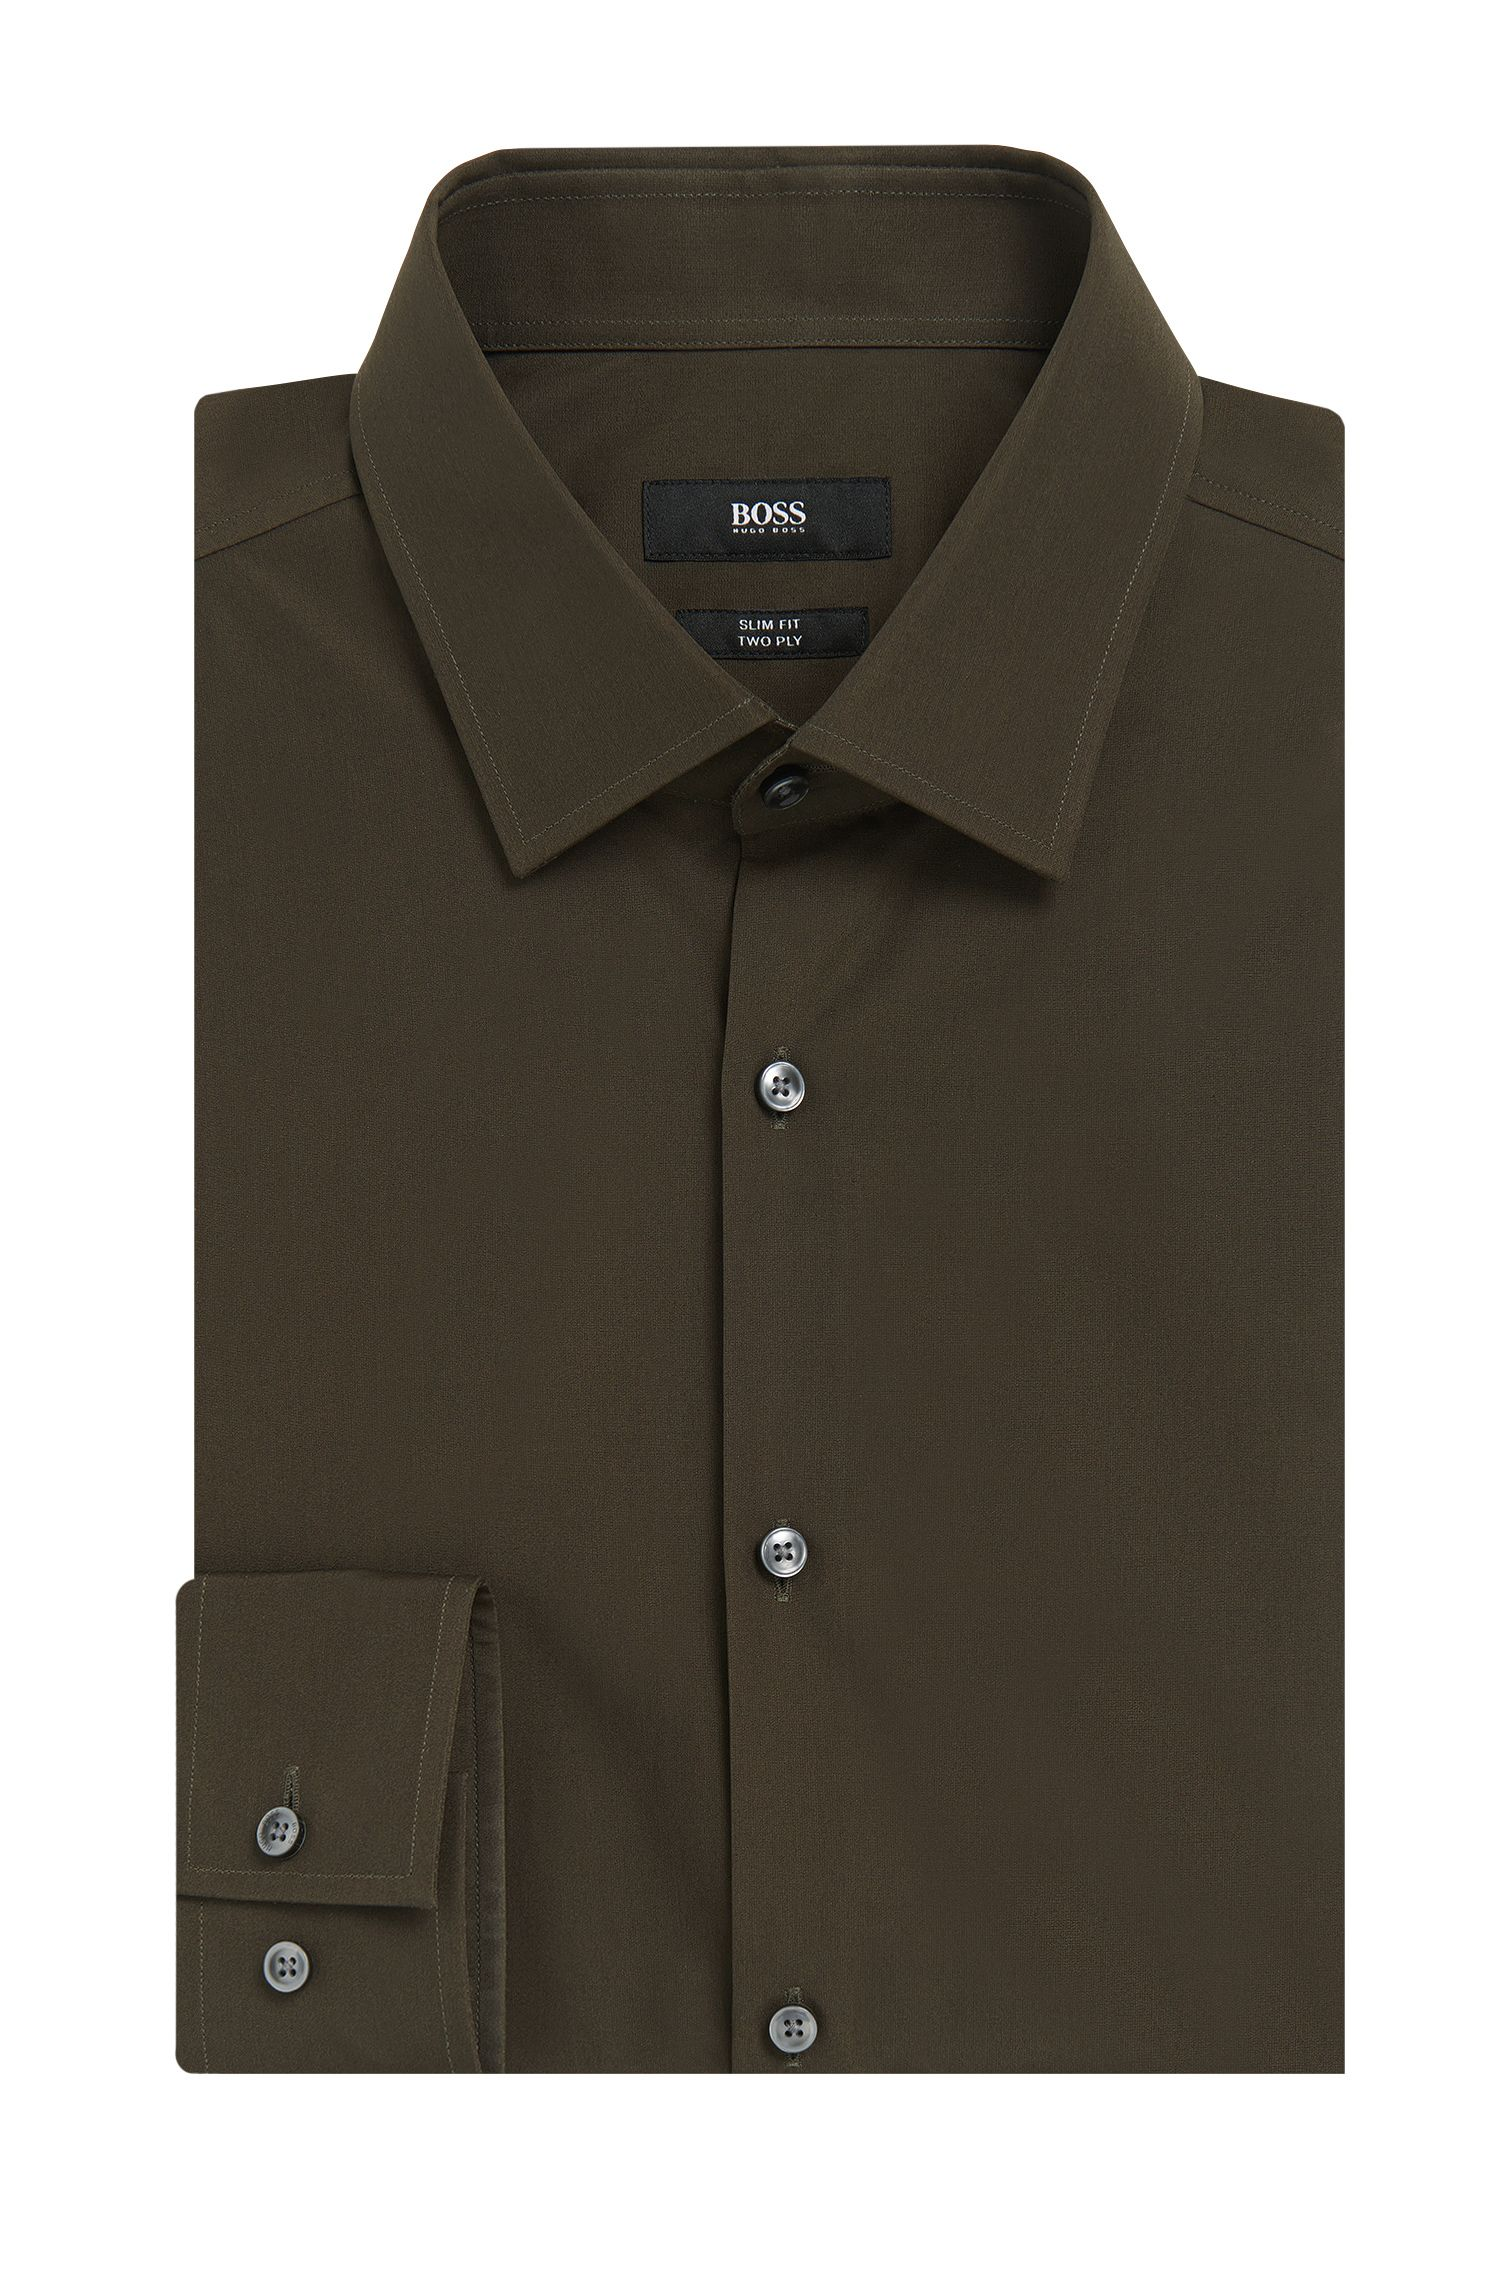 'Jenno' | Slim Fit, 2-Ply Italian Cotton Dress Shirt